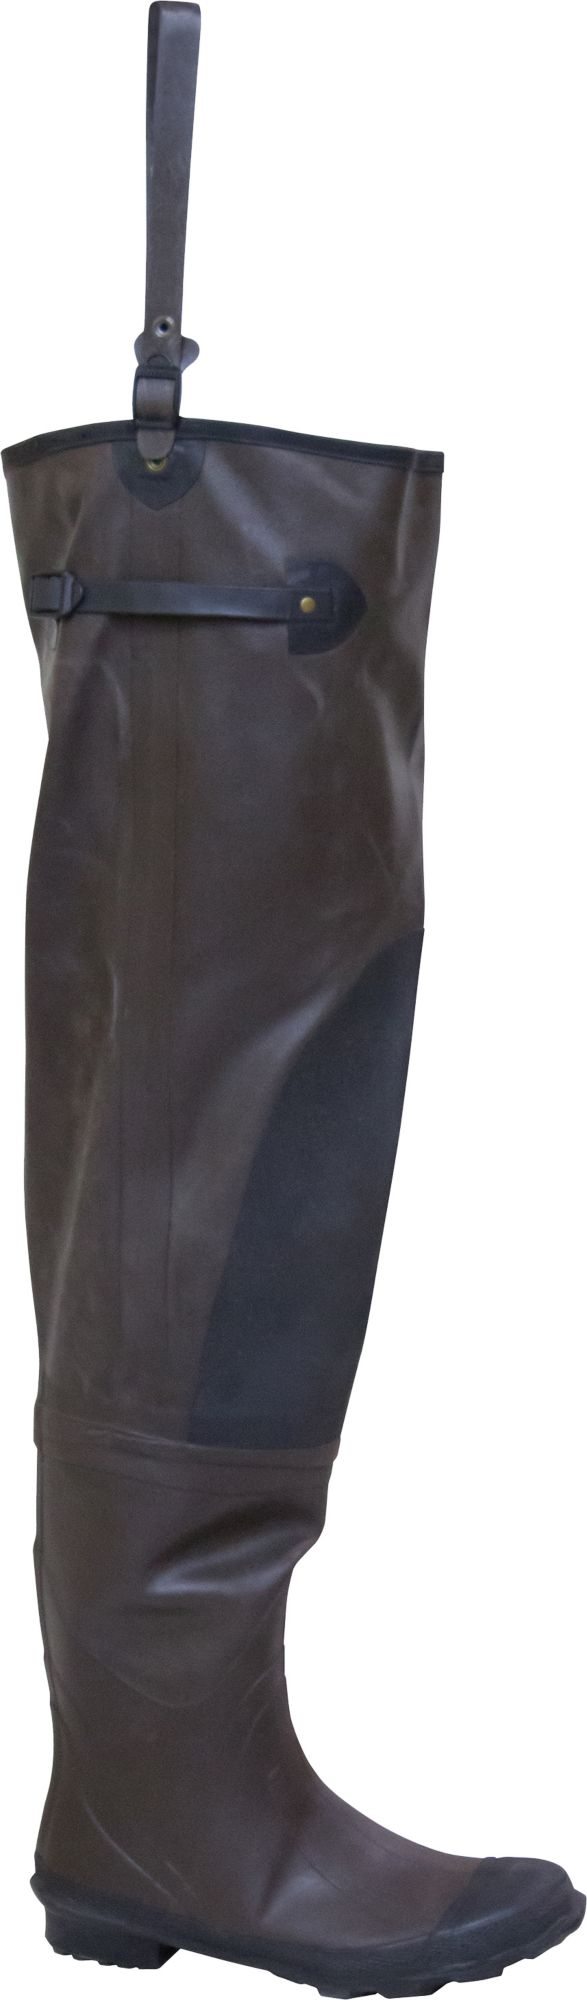 frogg toggs Classic Rubber Hip Waders, Men's, Size 10, Brown